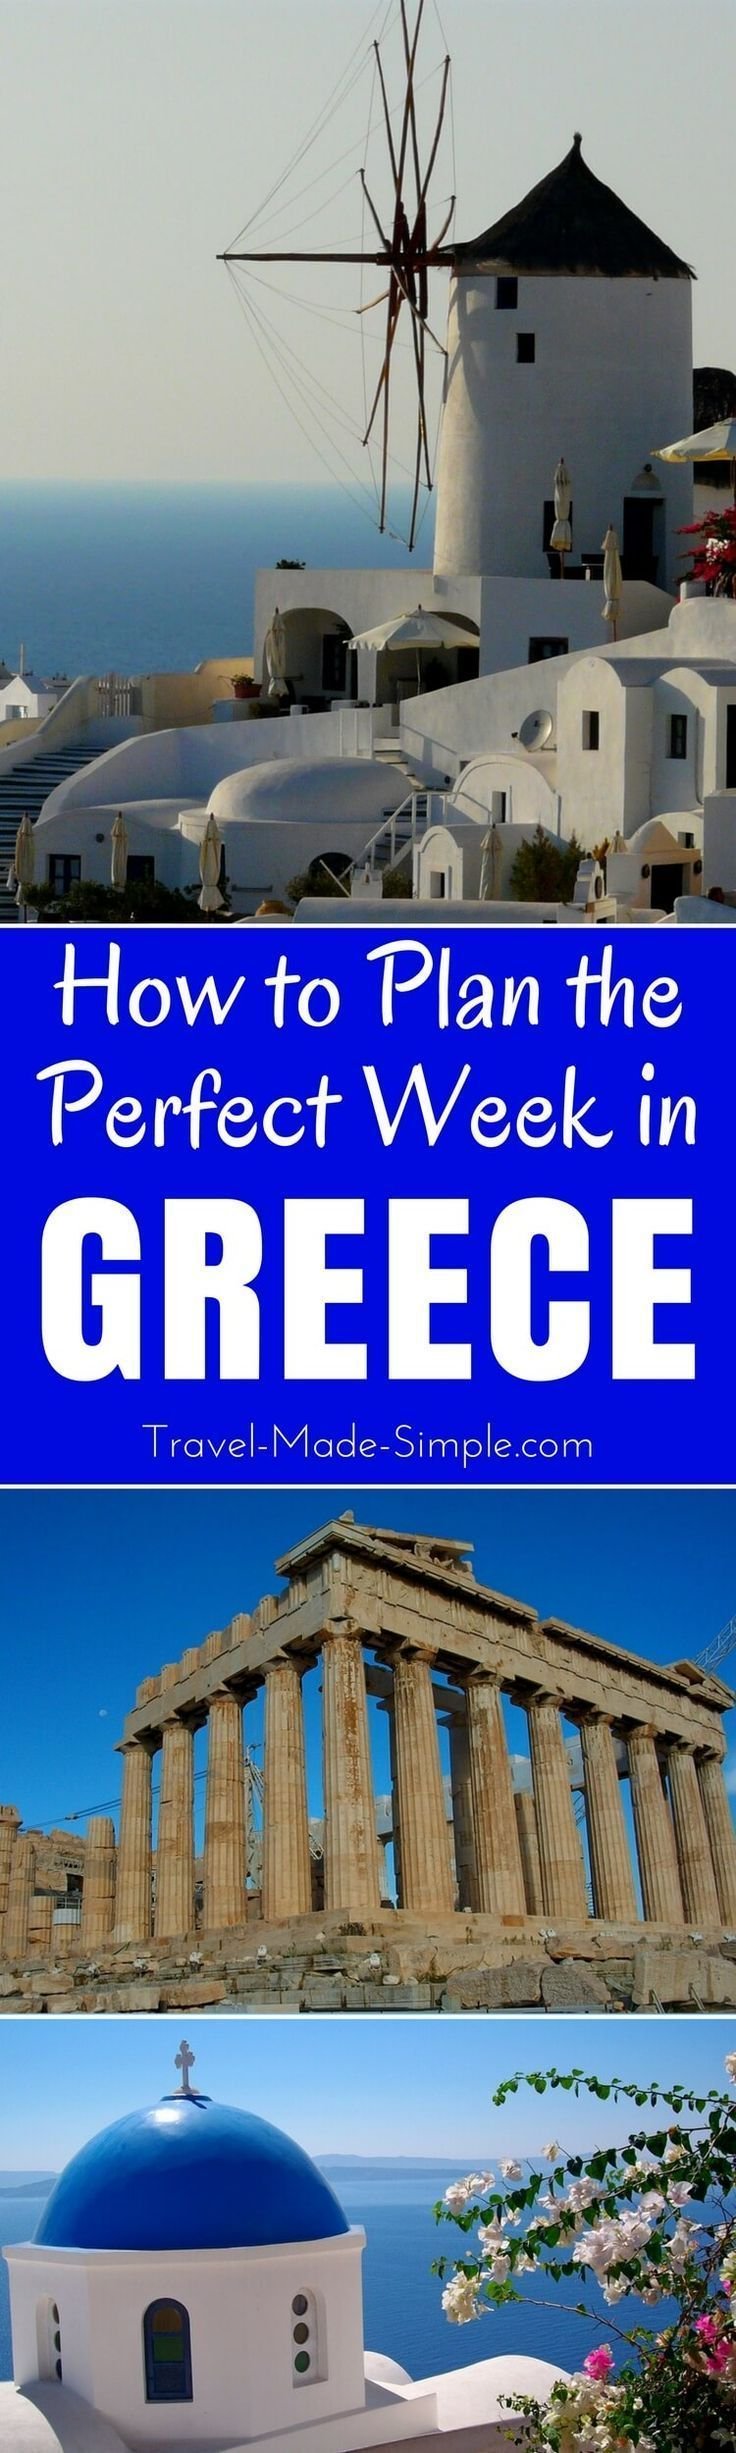 Here's how to make the most of one week in Greece. From the ruins to the islands, plan a trip to Greece with our Greece itinerary and enjoy your dream vacation! | one week in Greece | two weeks in Greece | travel to Greece | Greece travel planning tips | Greece tourist attractions | travel in Greece #greecetravel